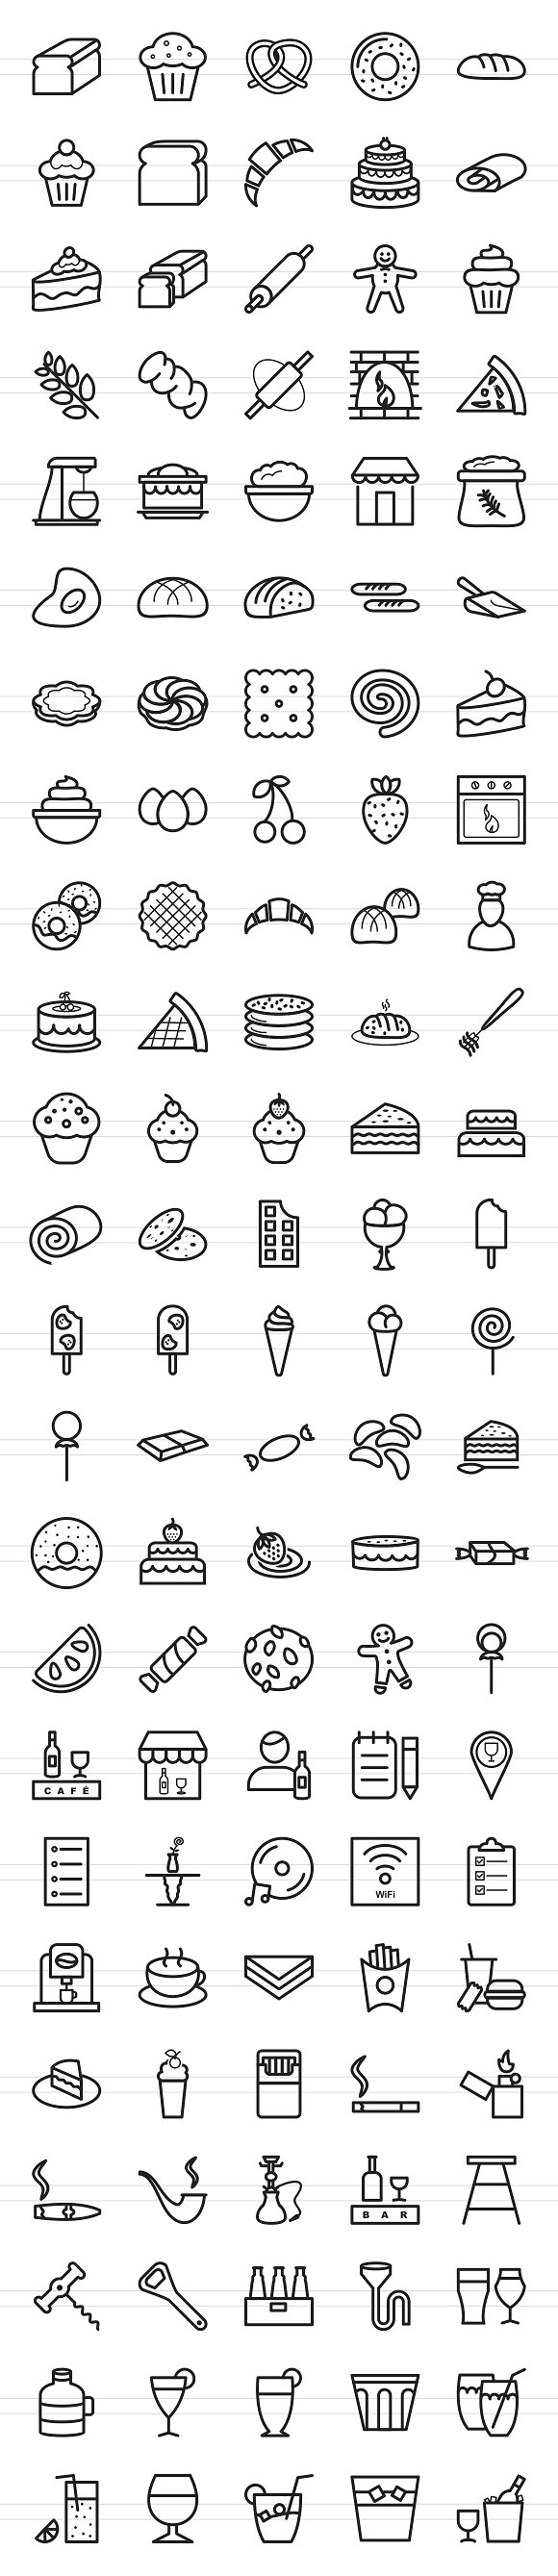 120 Sweets & Bakery Line Icons in Graphics - product preview 1